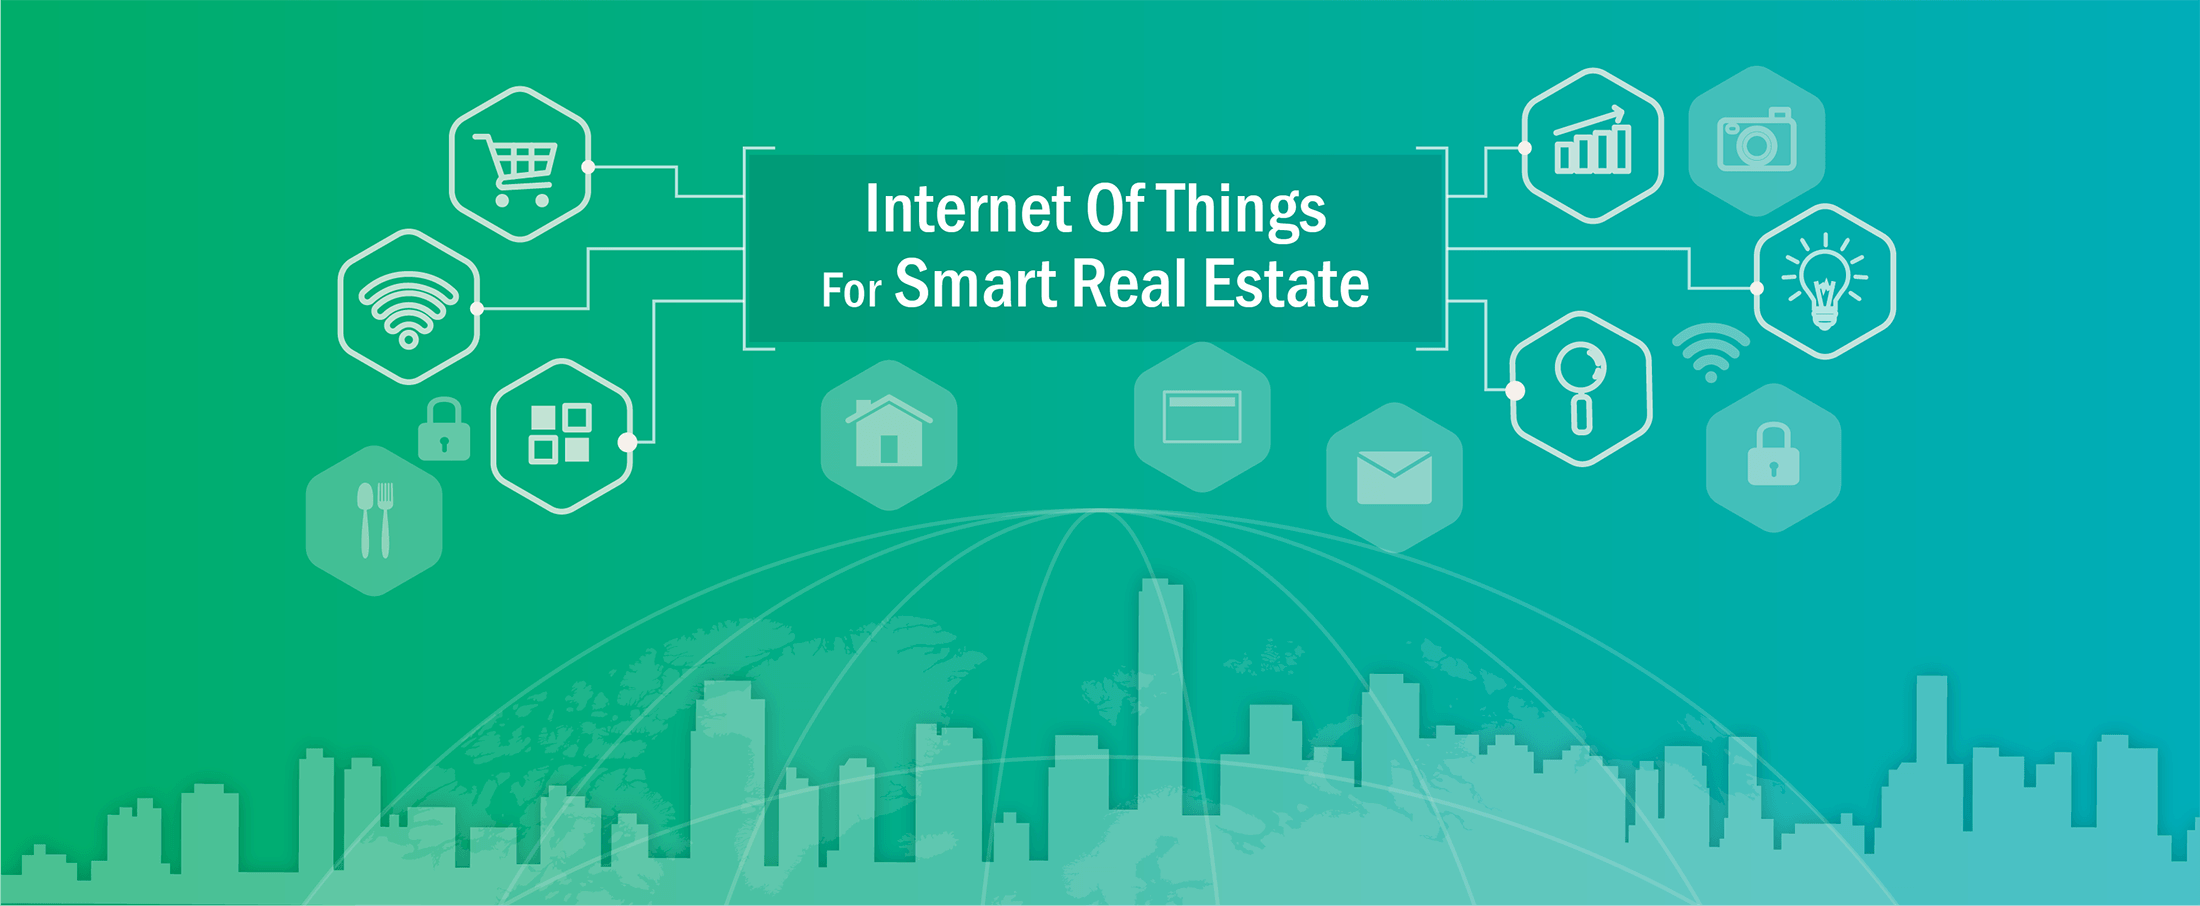 Internet of Things for SMART Real Estate